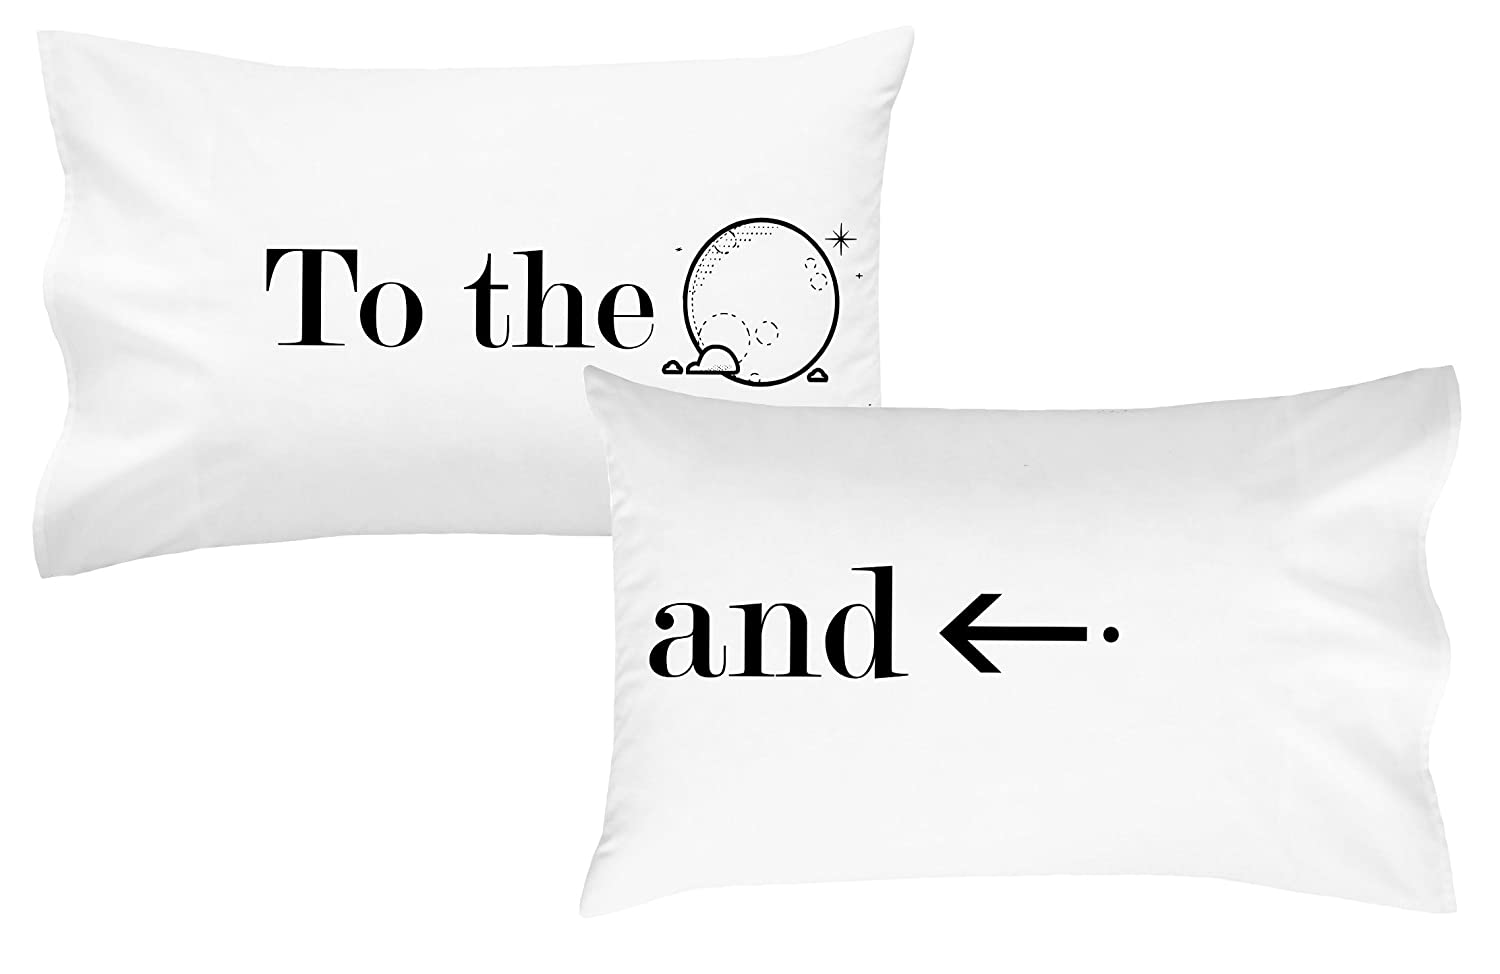 His And Her Wedding Anniversary Gifts : ... His and Her Wedding Anniversary Gift (2 Standard / Queen Size